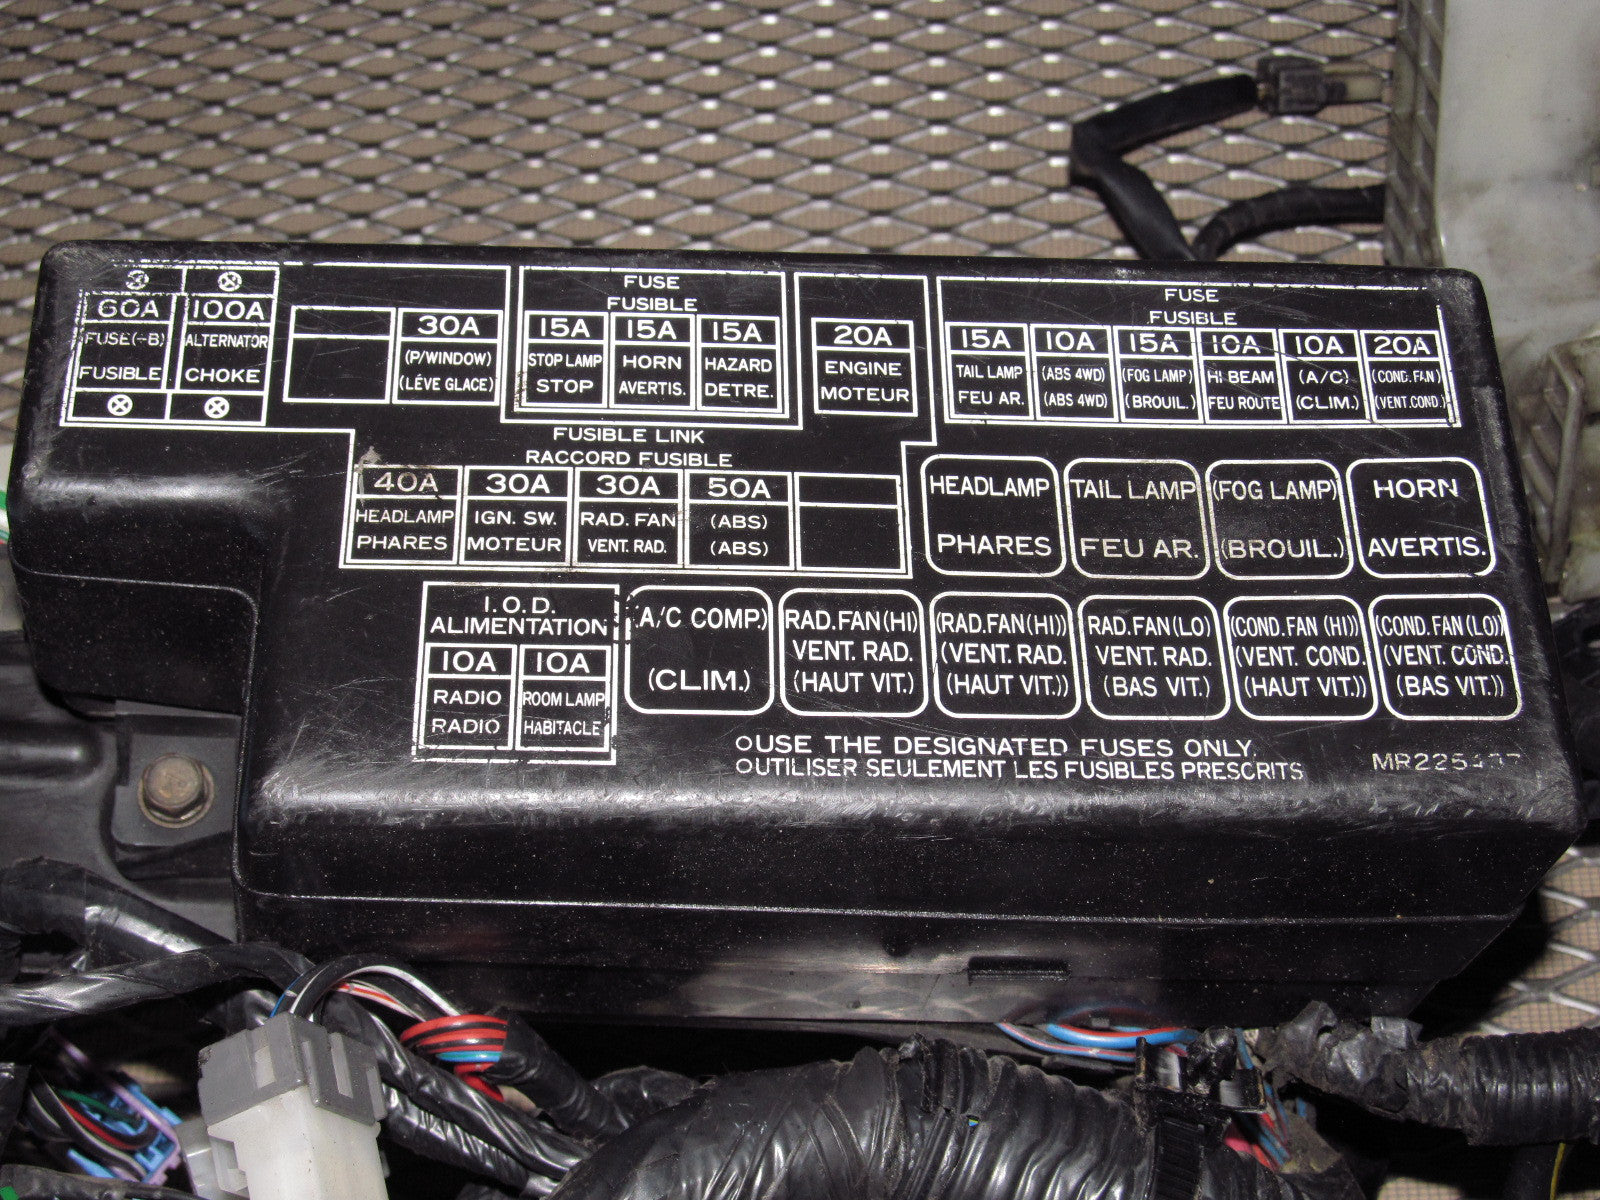 97 Explorer Engine Wiring Harness Trusted Diagrams Fuse Box 98 Eclipse Enthusiast U2022 2002 Impala